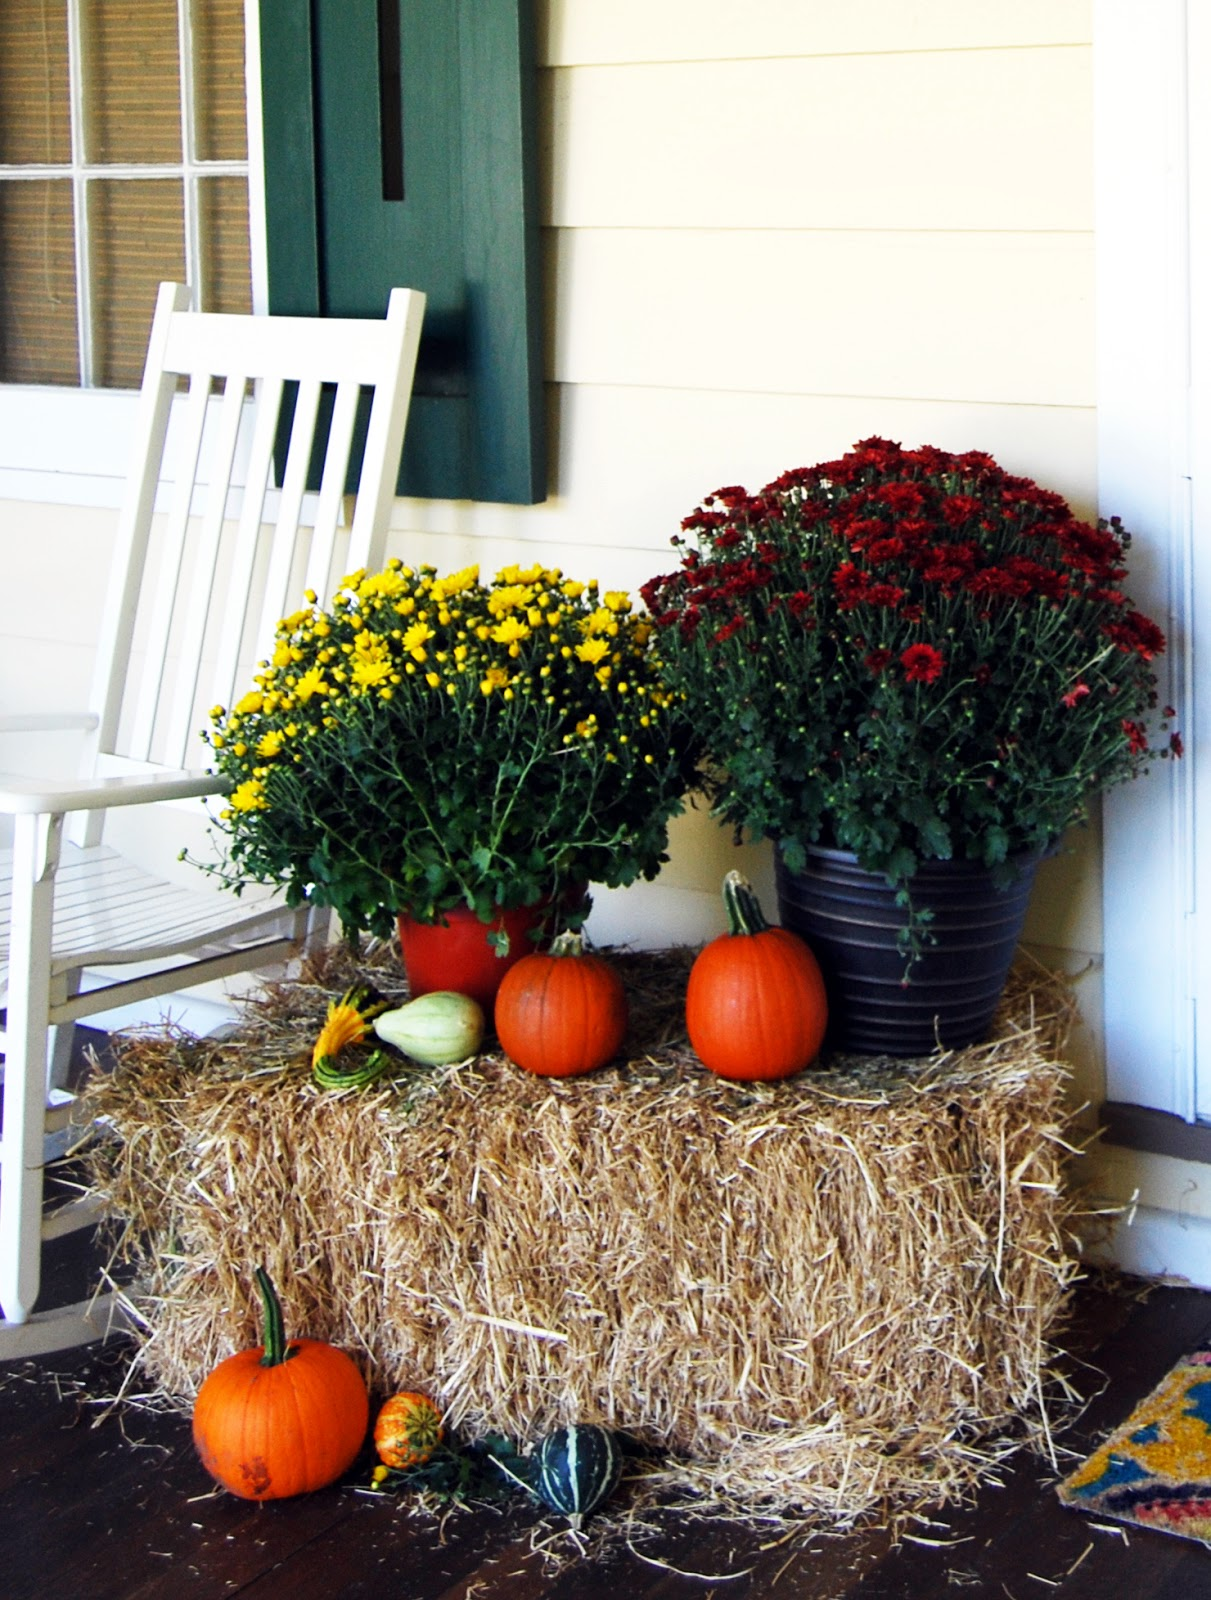 Easy outdoor fall decorating ideas - 25 Most Popular Christmas Decorations